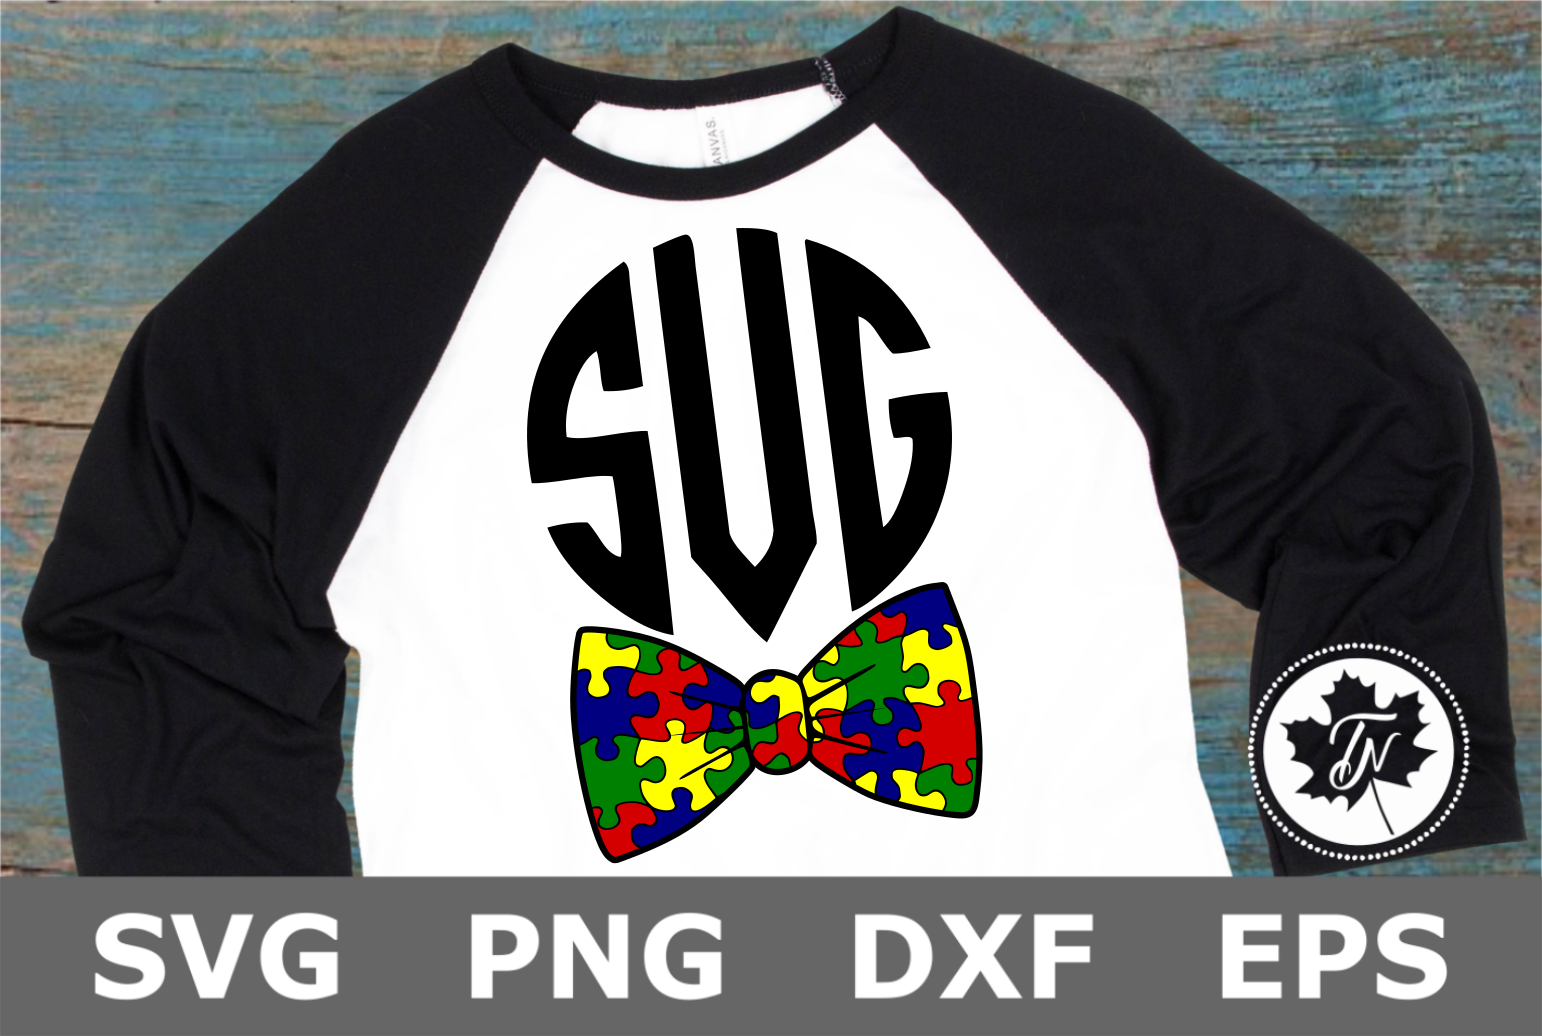 Puzzle Piece Bow Tie - An Autism Awareness SVG Cut File example image 1